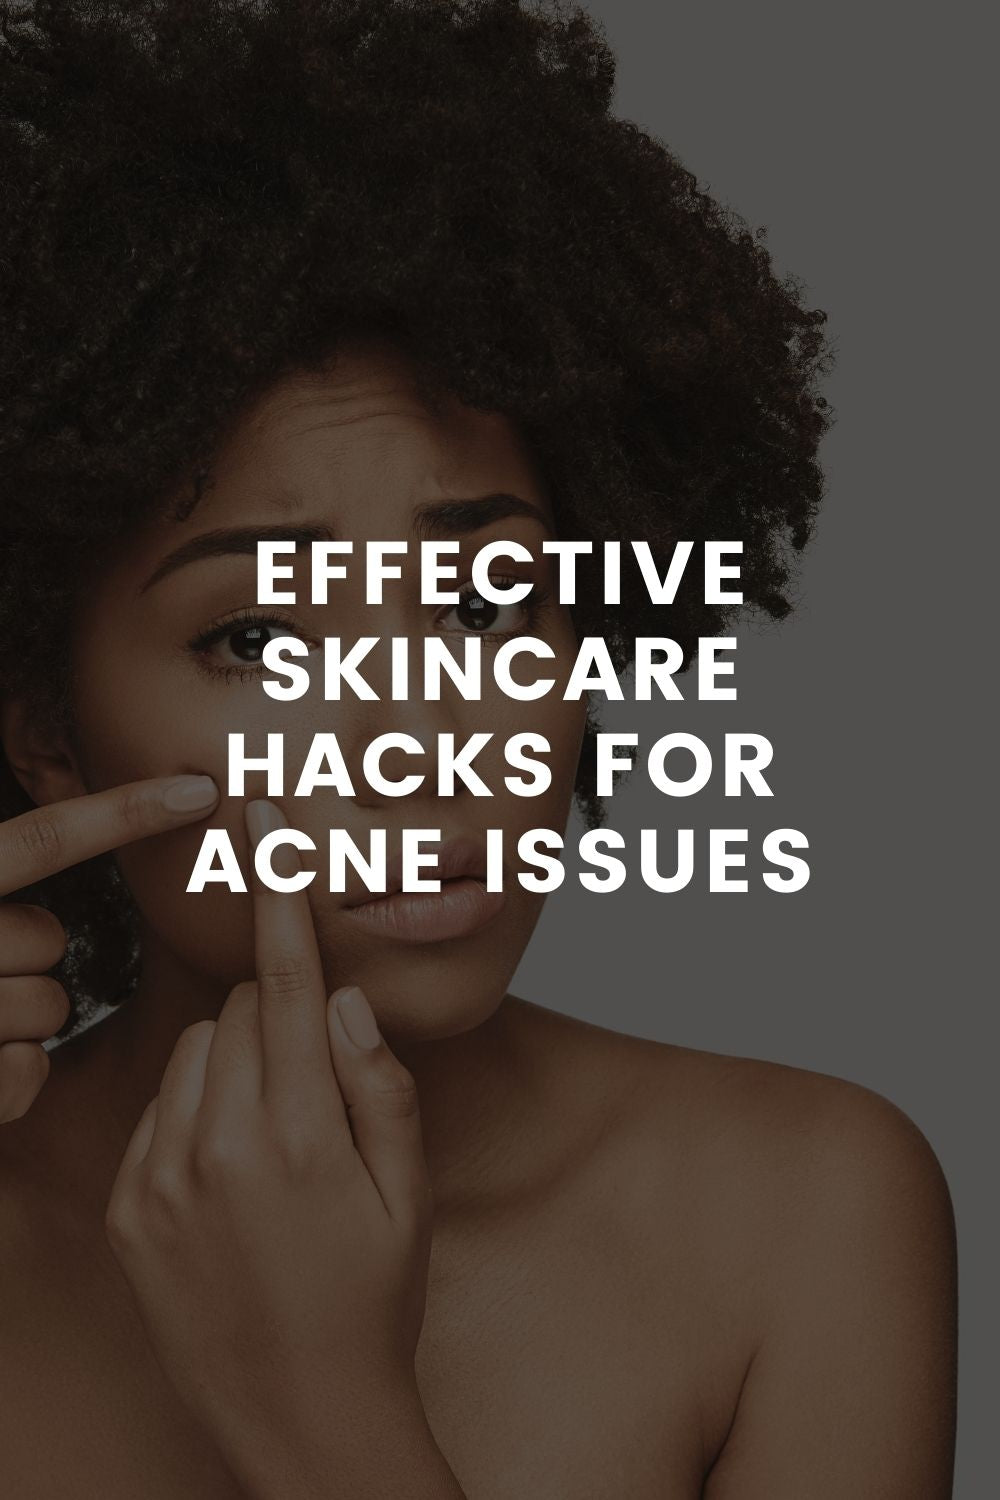 Effective Skincare Hacks For Acne Issues